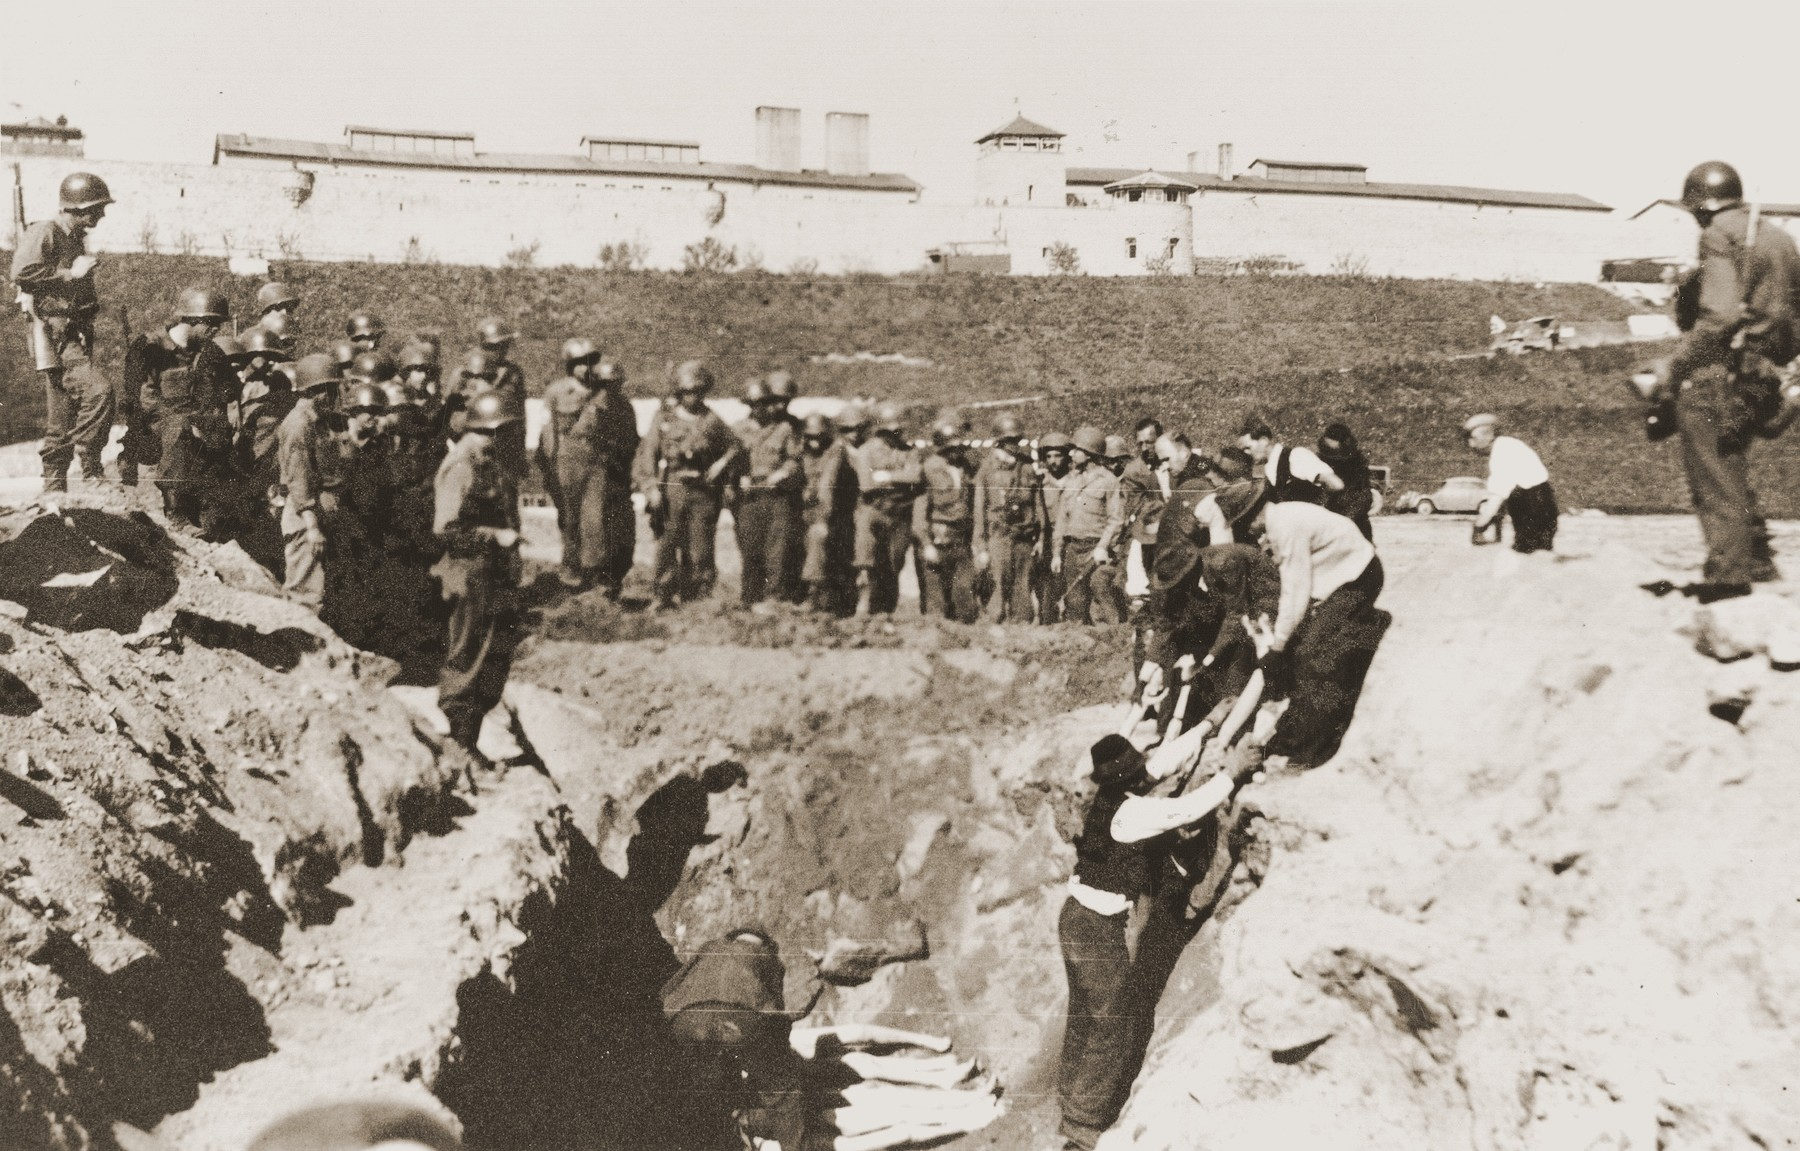 American soldiers watch as Austrian civilians lay the bodies of Mauthausen victims in a mass grave dug in the former SS soccer field.  Ray Buch stands at the right holding a camera.  Officers Chas Thurston of Pennsylvania and Harry Brown of Texas are among the American soldiers standing guard.